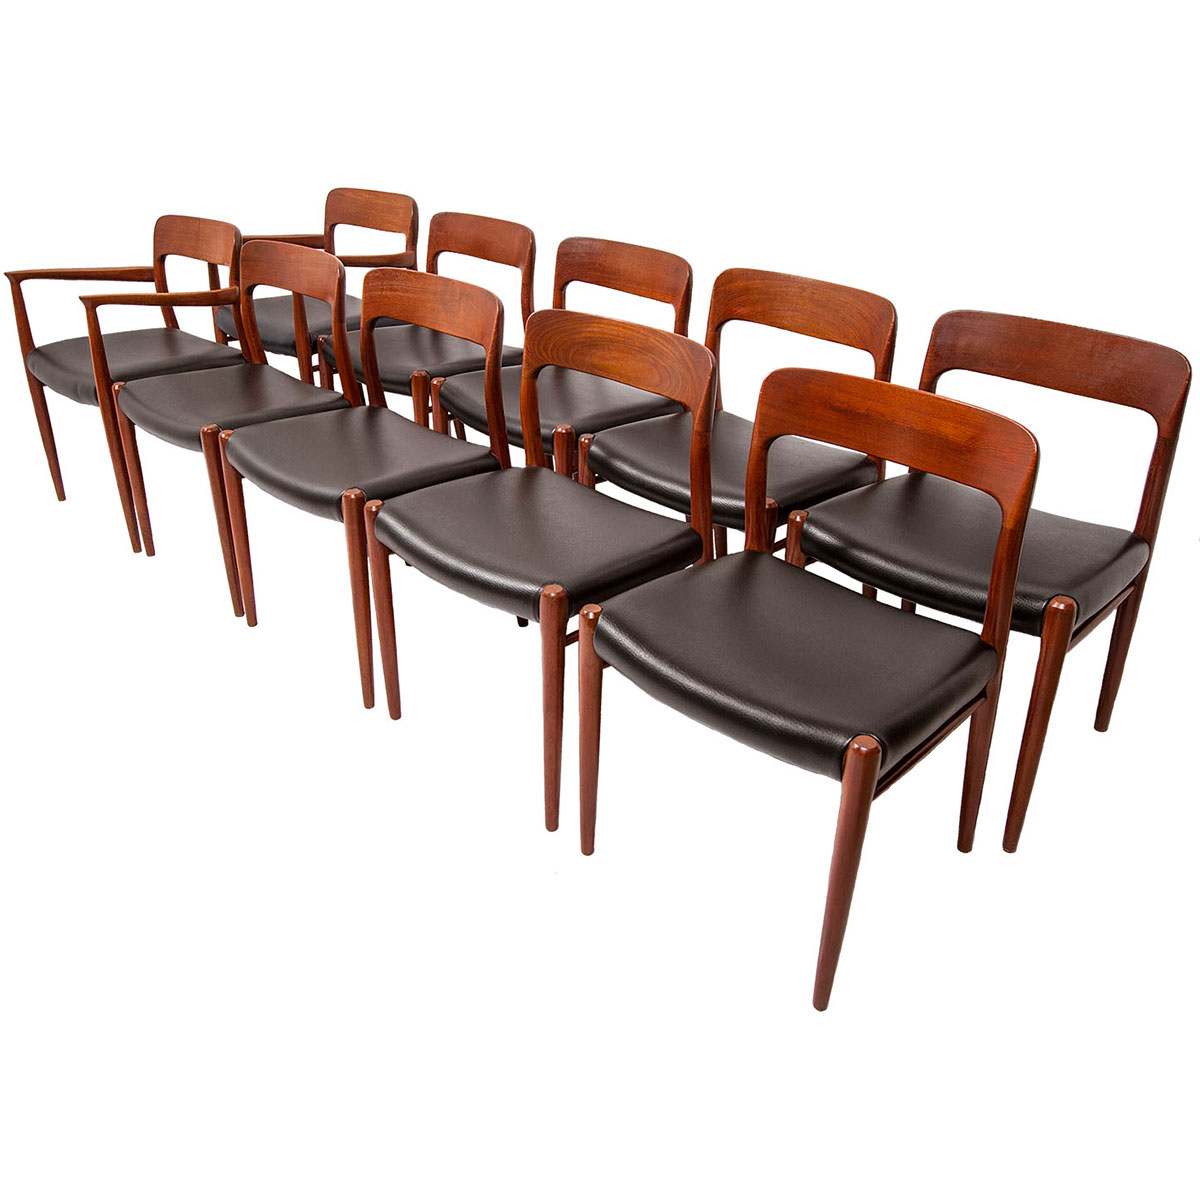 Set of 10 (2 Arm + 8 Side) Niels O. Møller #56 & #75 Teak Dining Chairs w/ New Upholstery